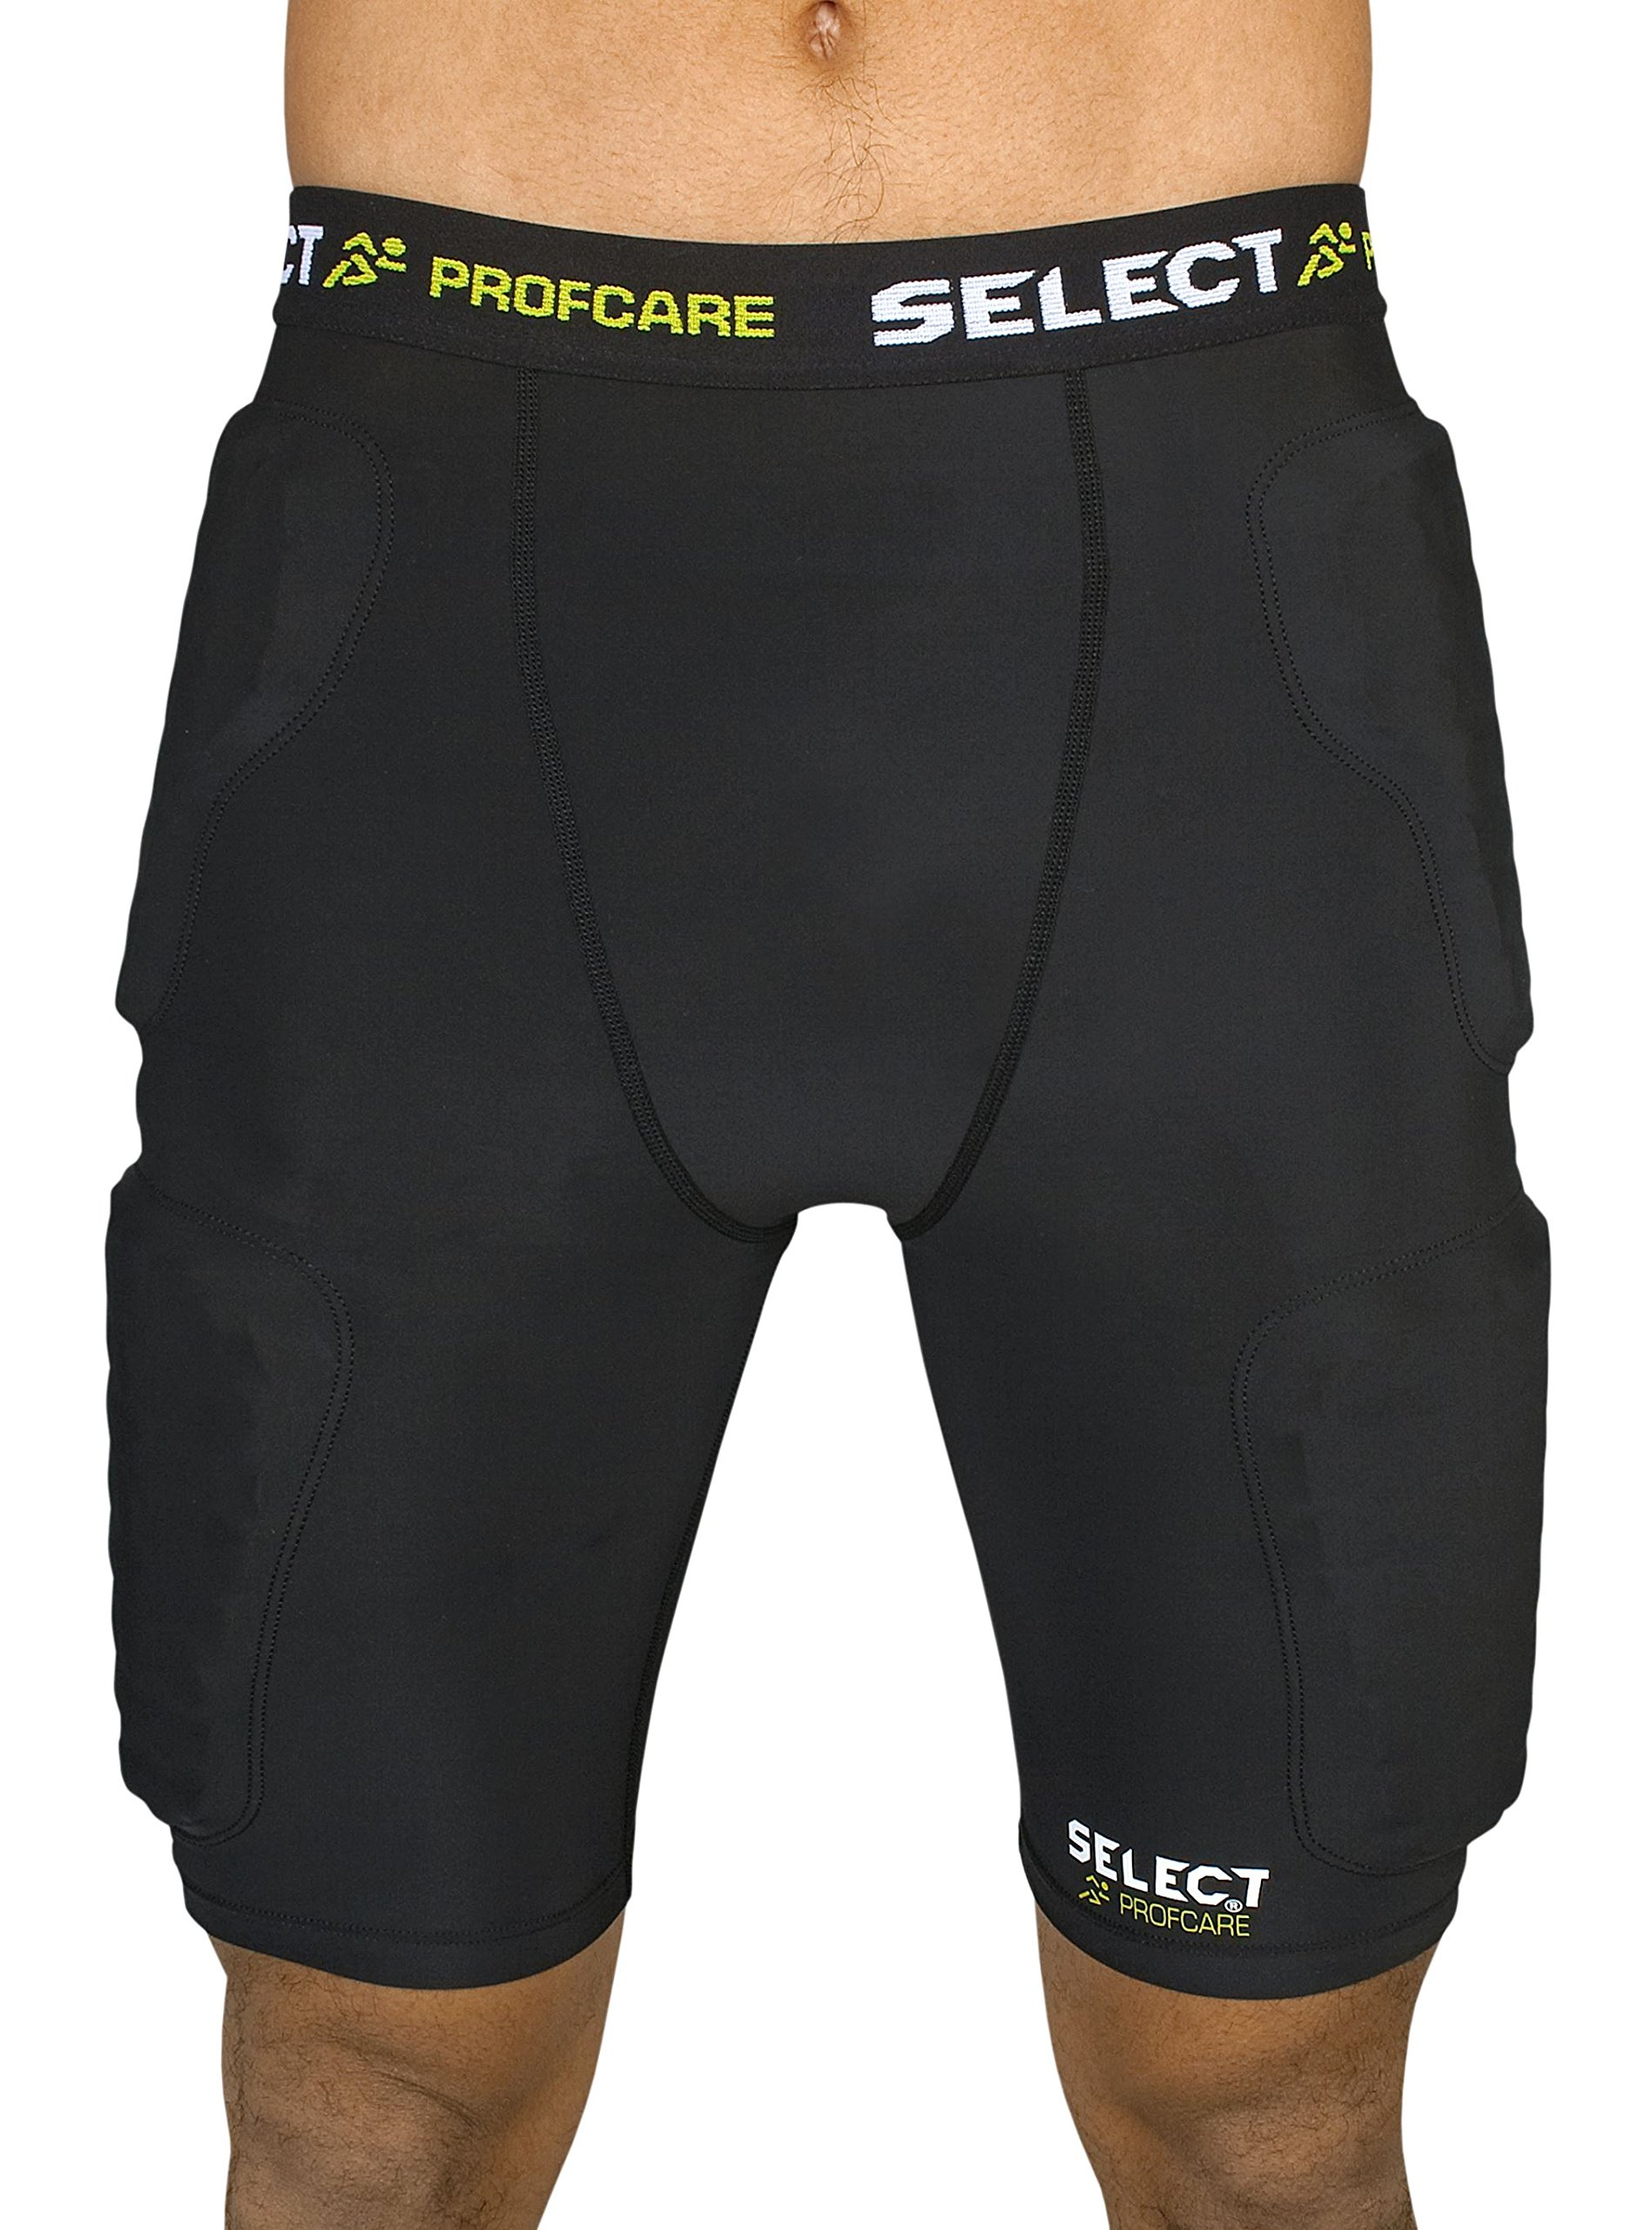 Select Sport America Padded Compression Shorts, Small